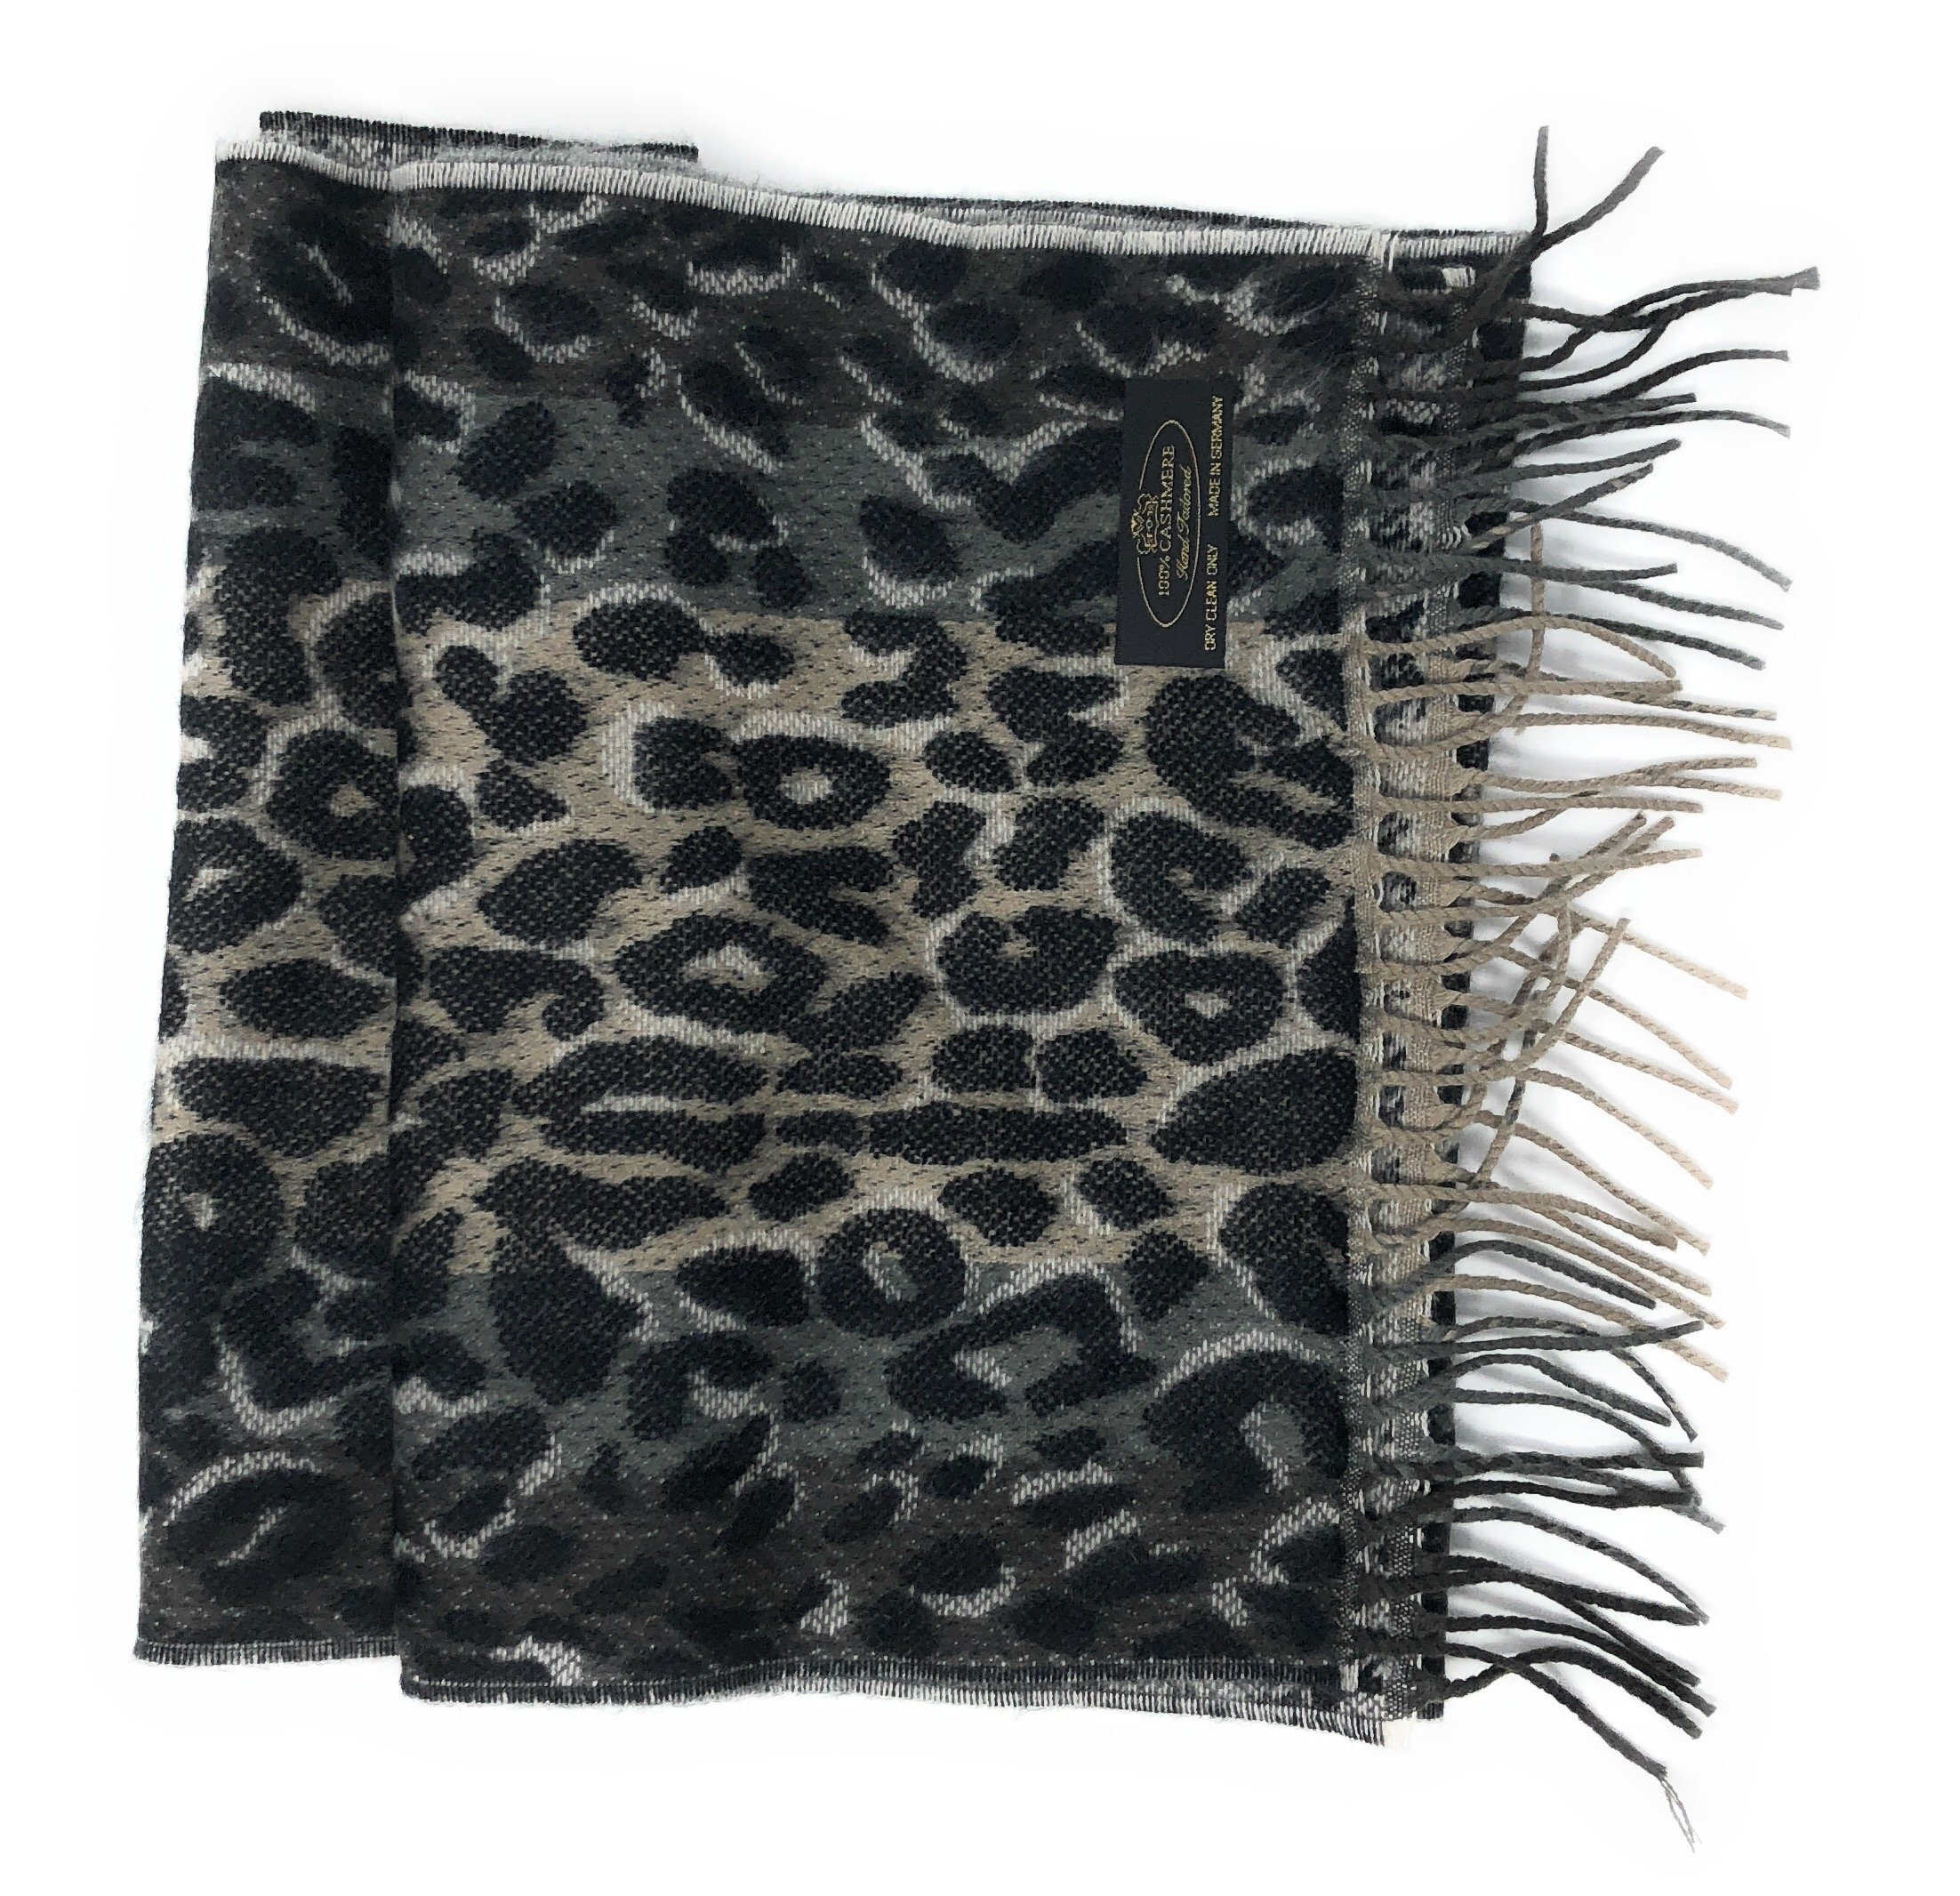 """Anny's 100% Pure Cashmere Scarf 12""""x72"""" with Gift Bag - Silky Soft Cashmere Scarf Gift (28 Colors) (Leopard Print) by Anny's"""